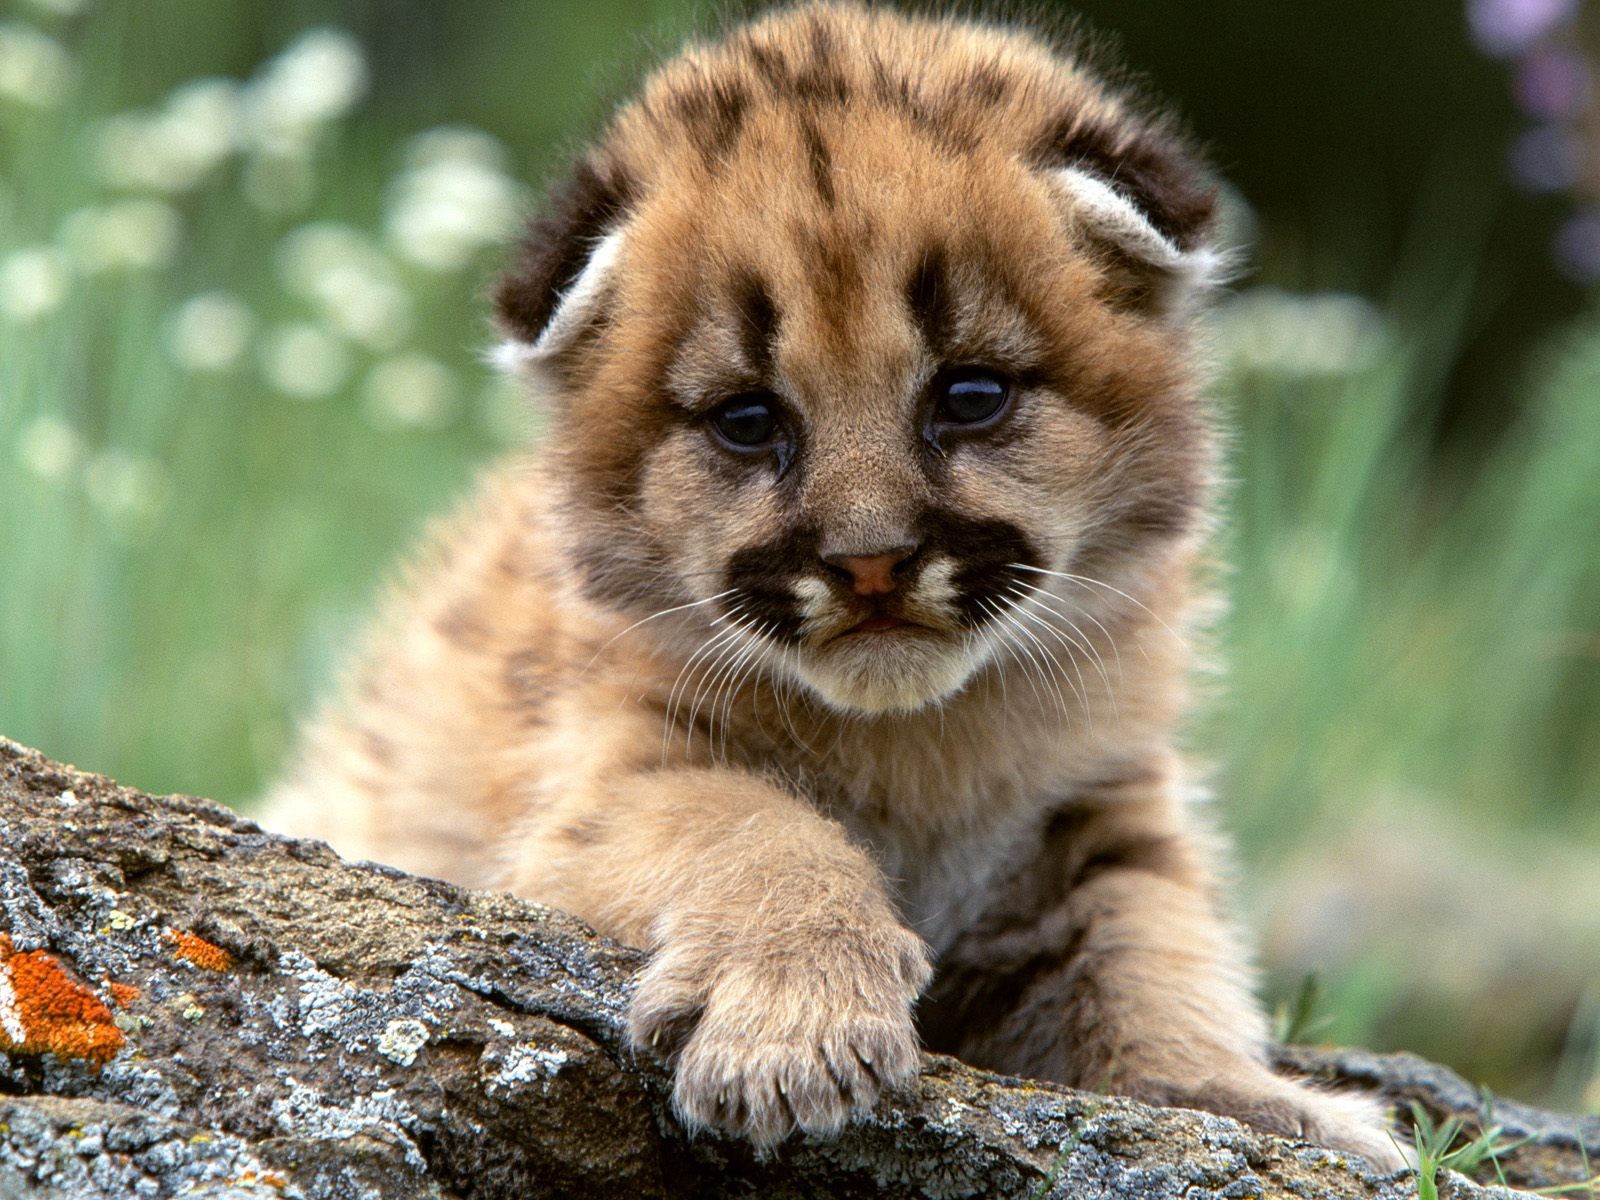 Baby Cheetah Wallpapers Picture - Wickedsa com